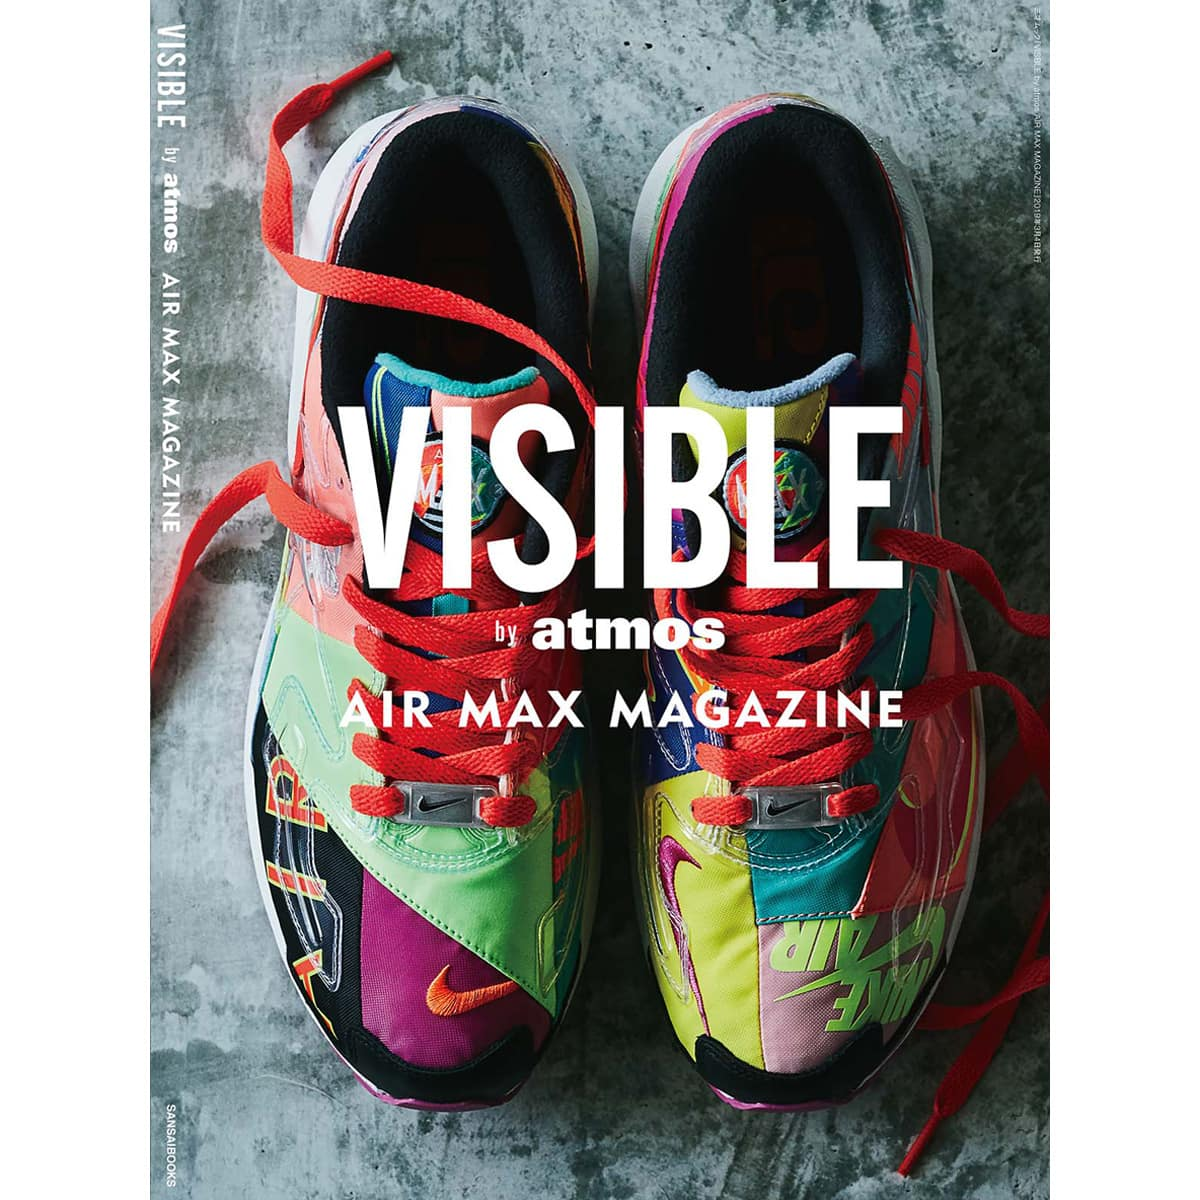 VISIBLE by atmos AIR MAX MAGAZINE_photo_large